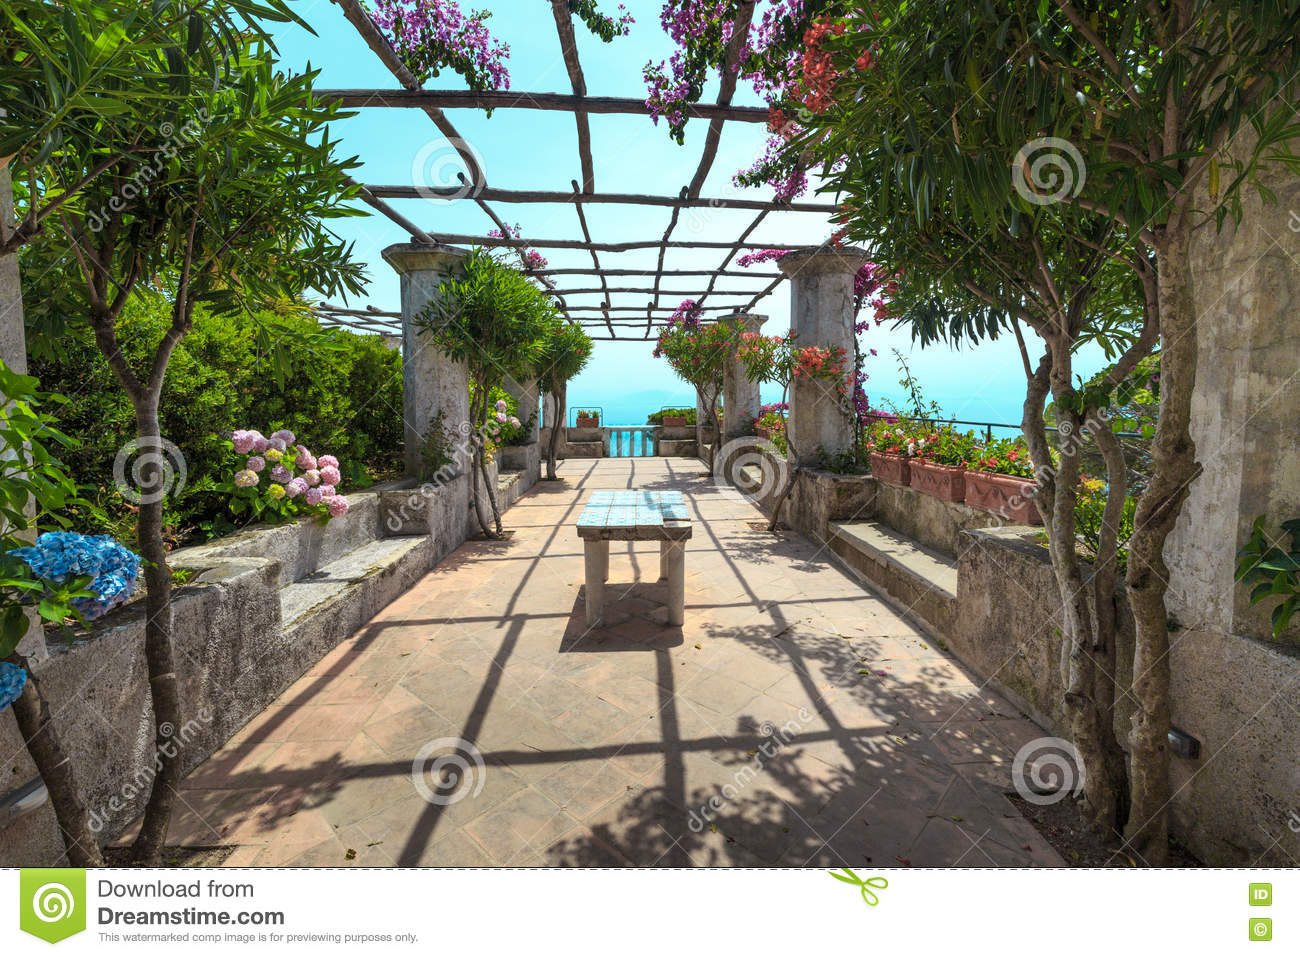 pergola sur la terrasse la mer m diterran e photo stock image 82035660. Black Bedroom Furniture Sets. Home Design Ideas